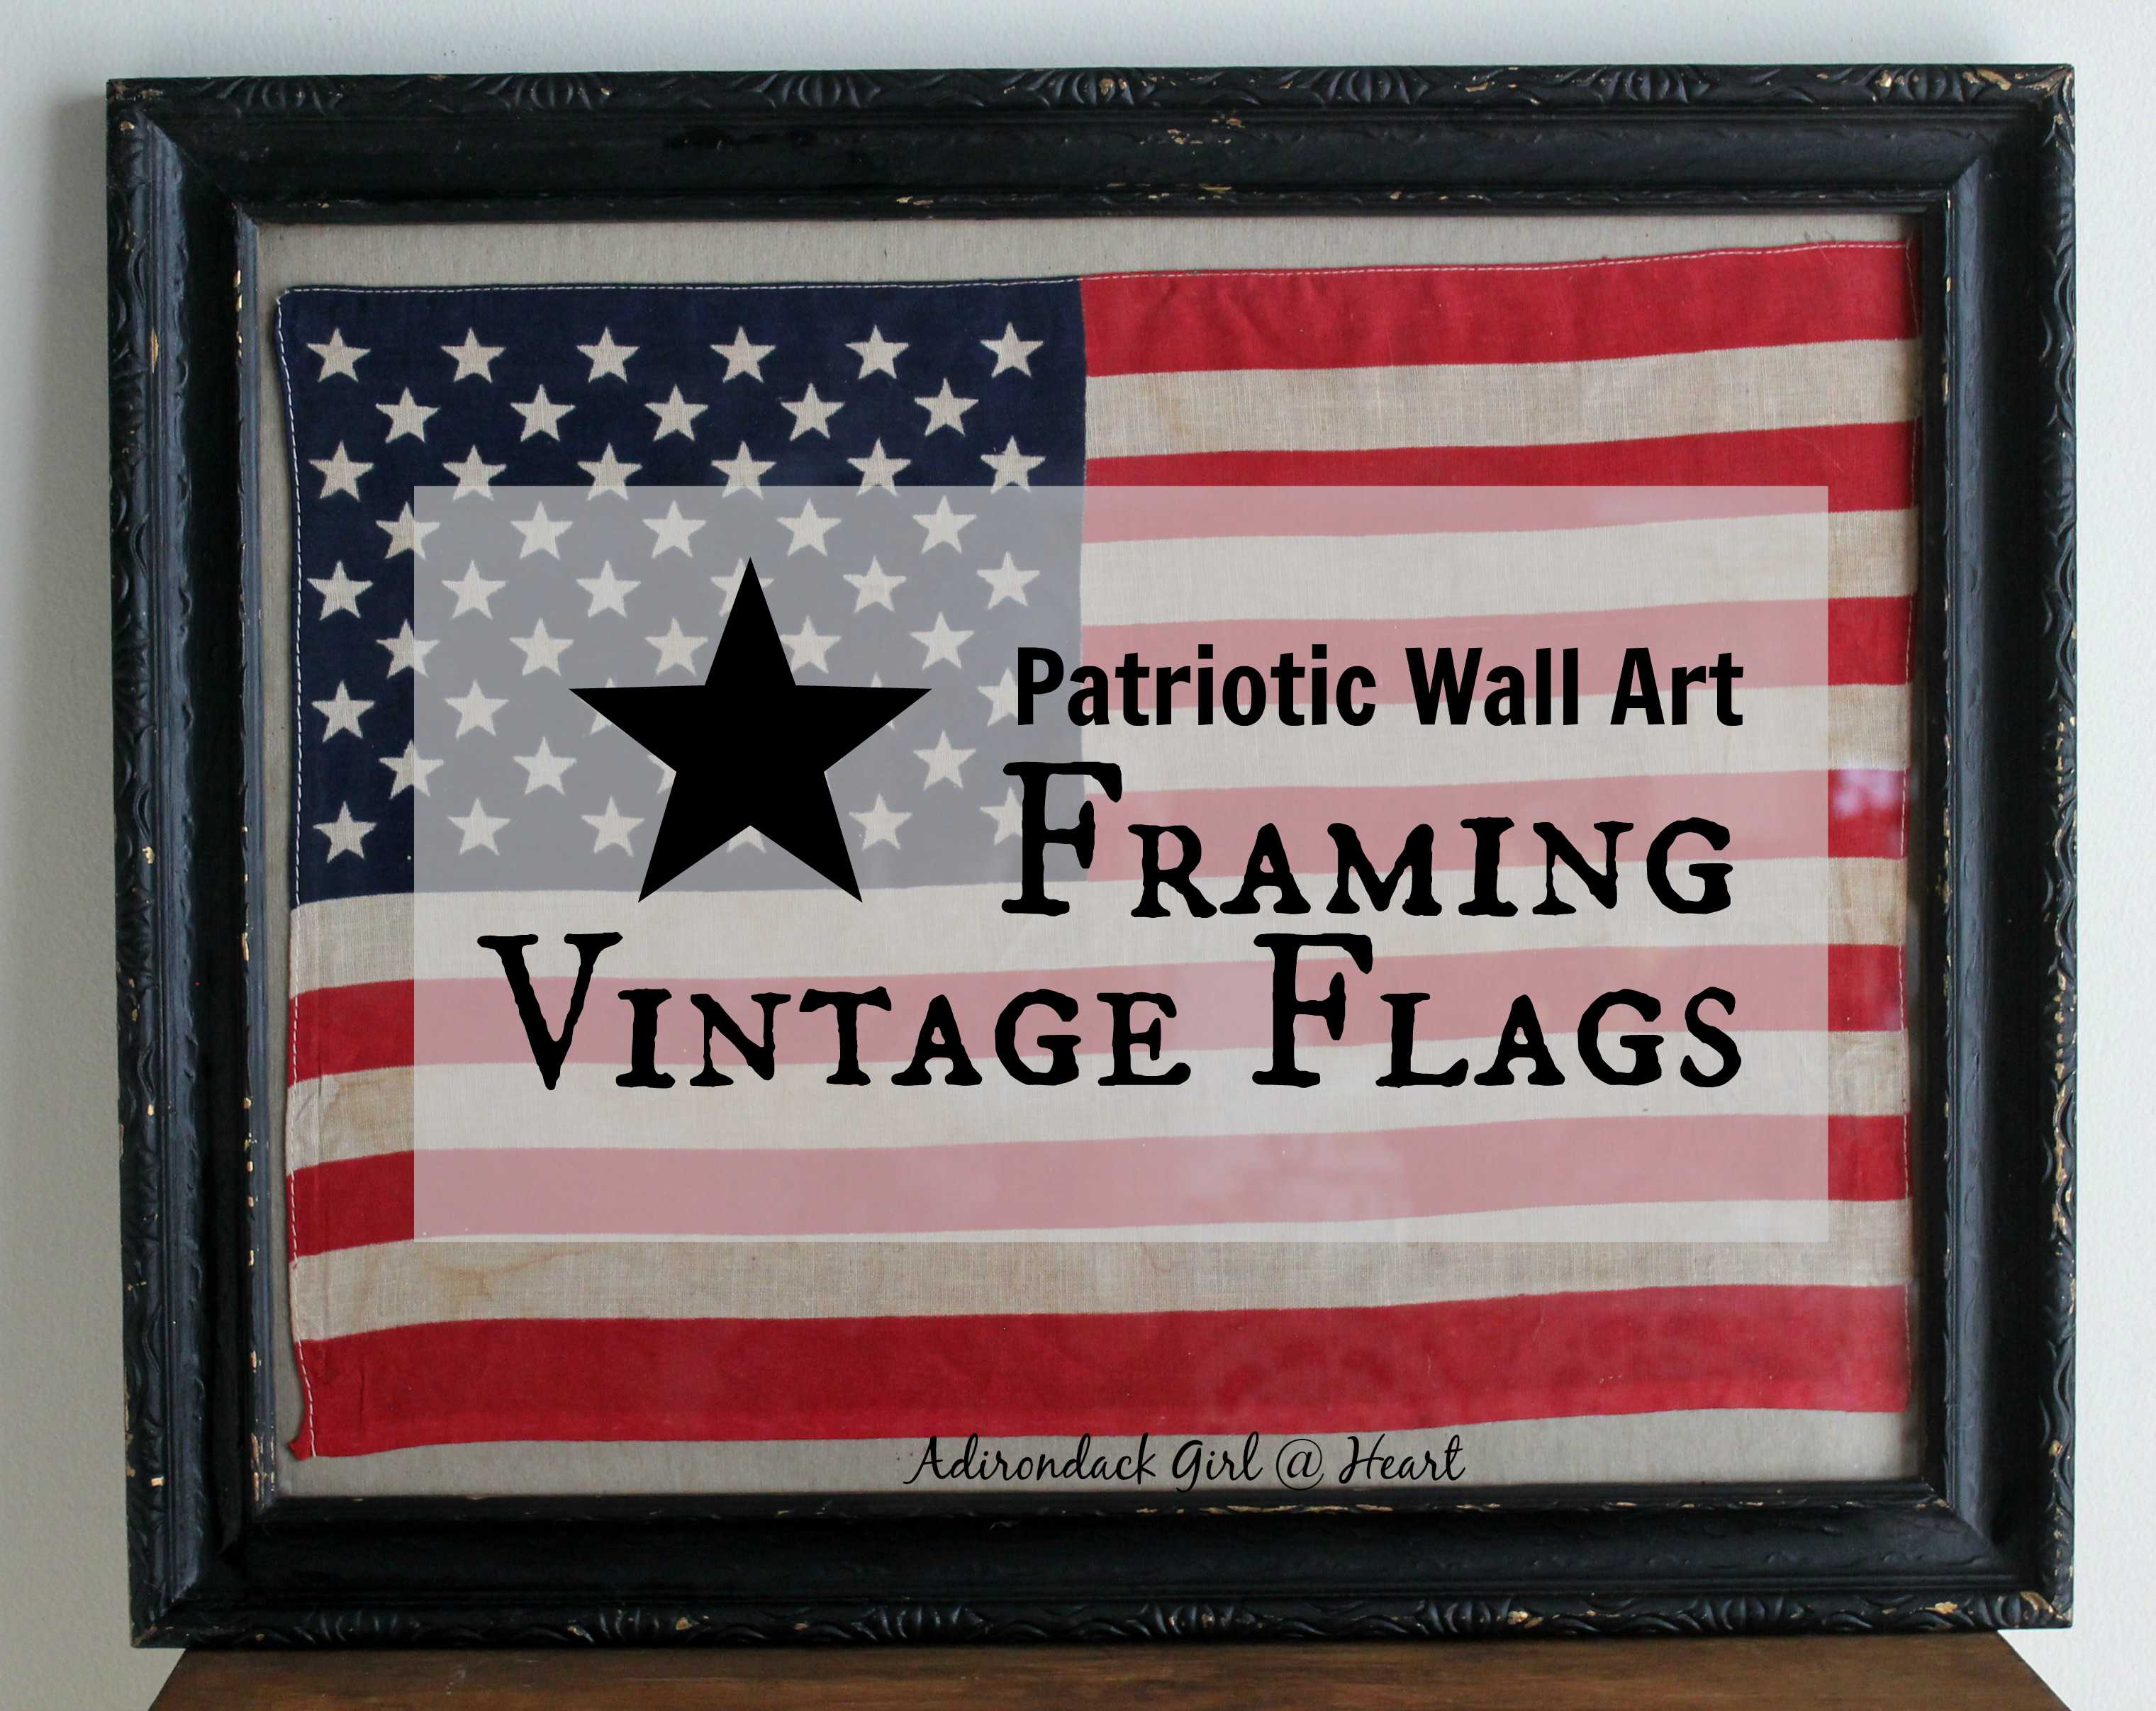 Patriotic Wall Art Framing Vintage Flags by Adirondack Girl @ Heart